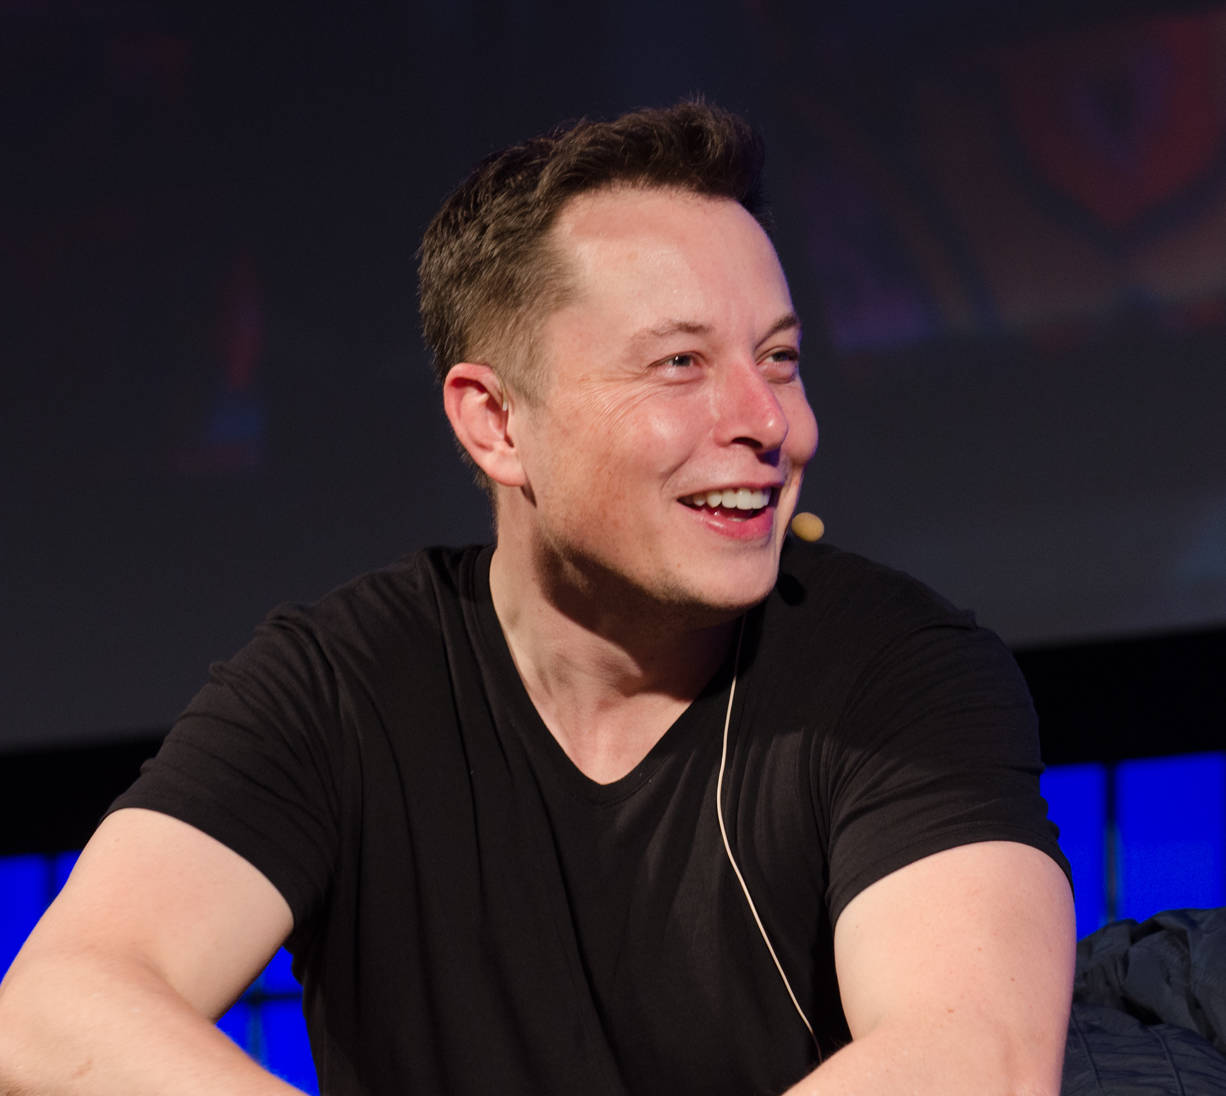 Elon Musk tells employees to work harder than ever